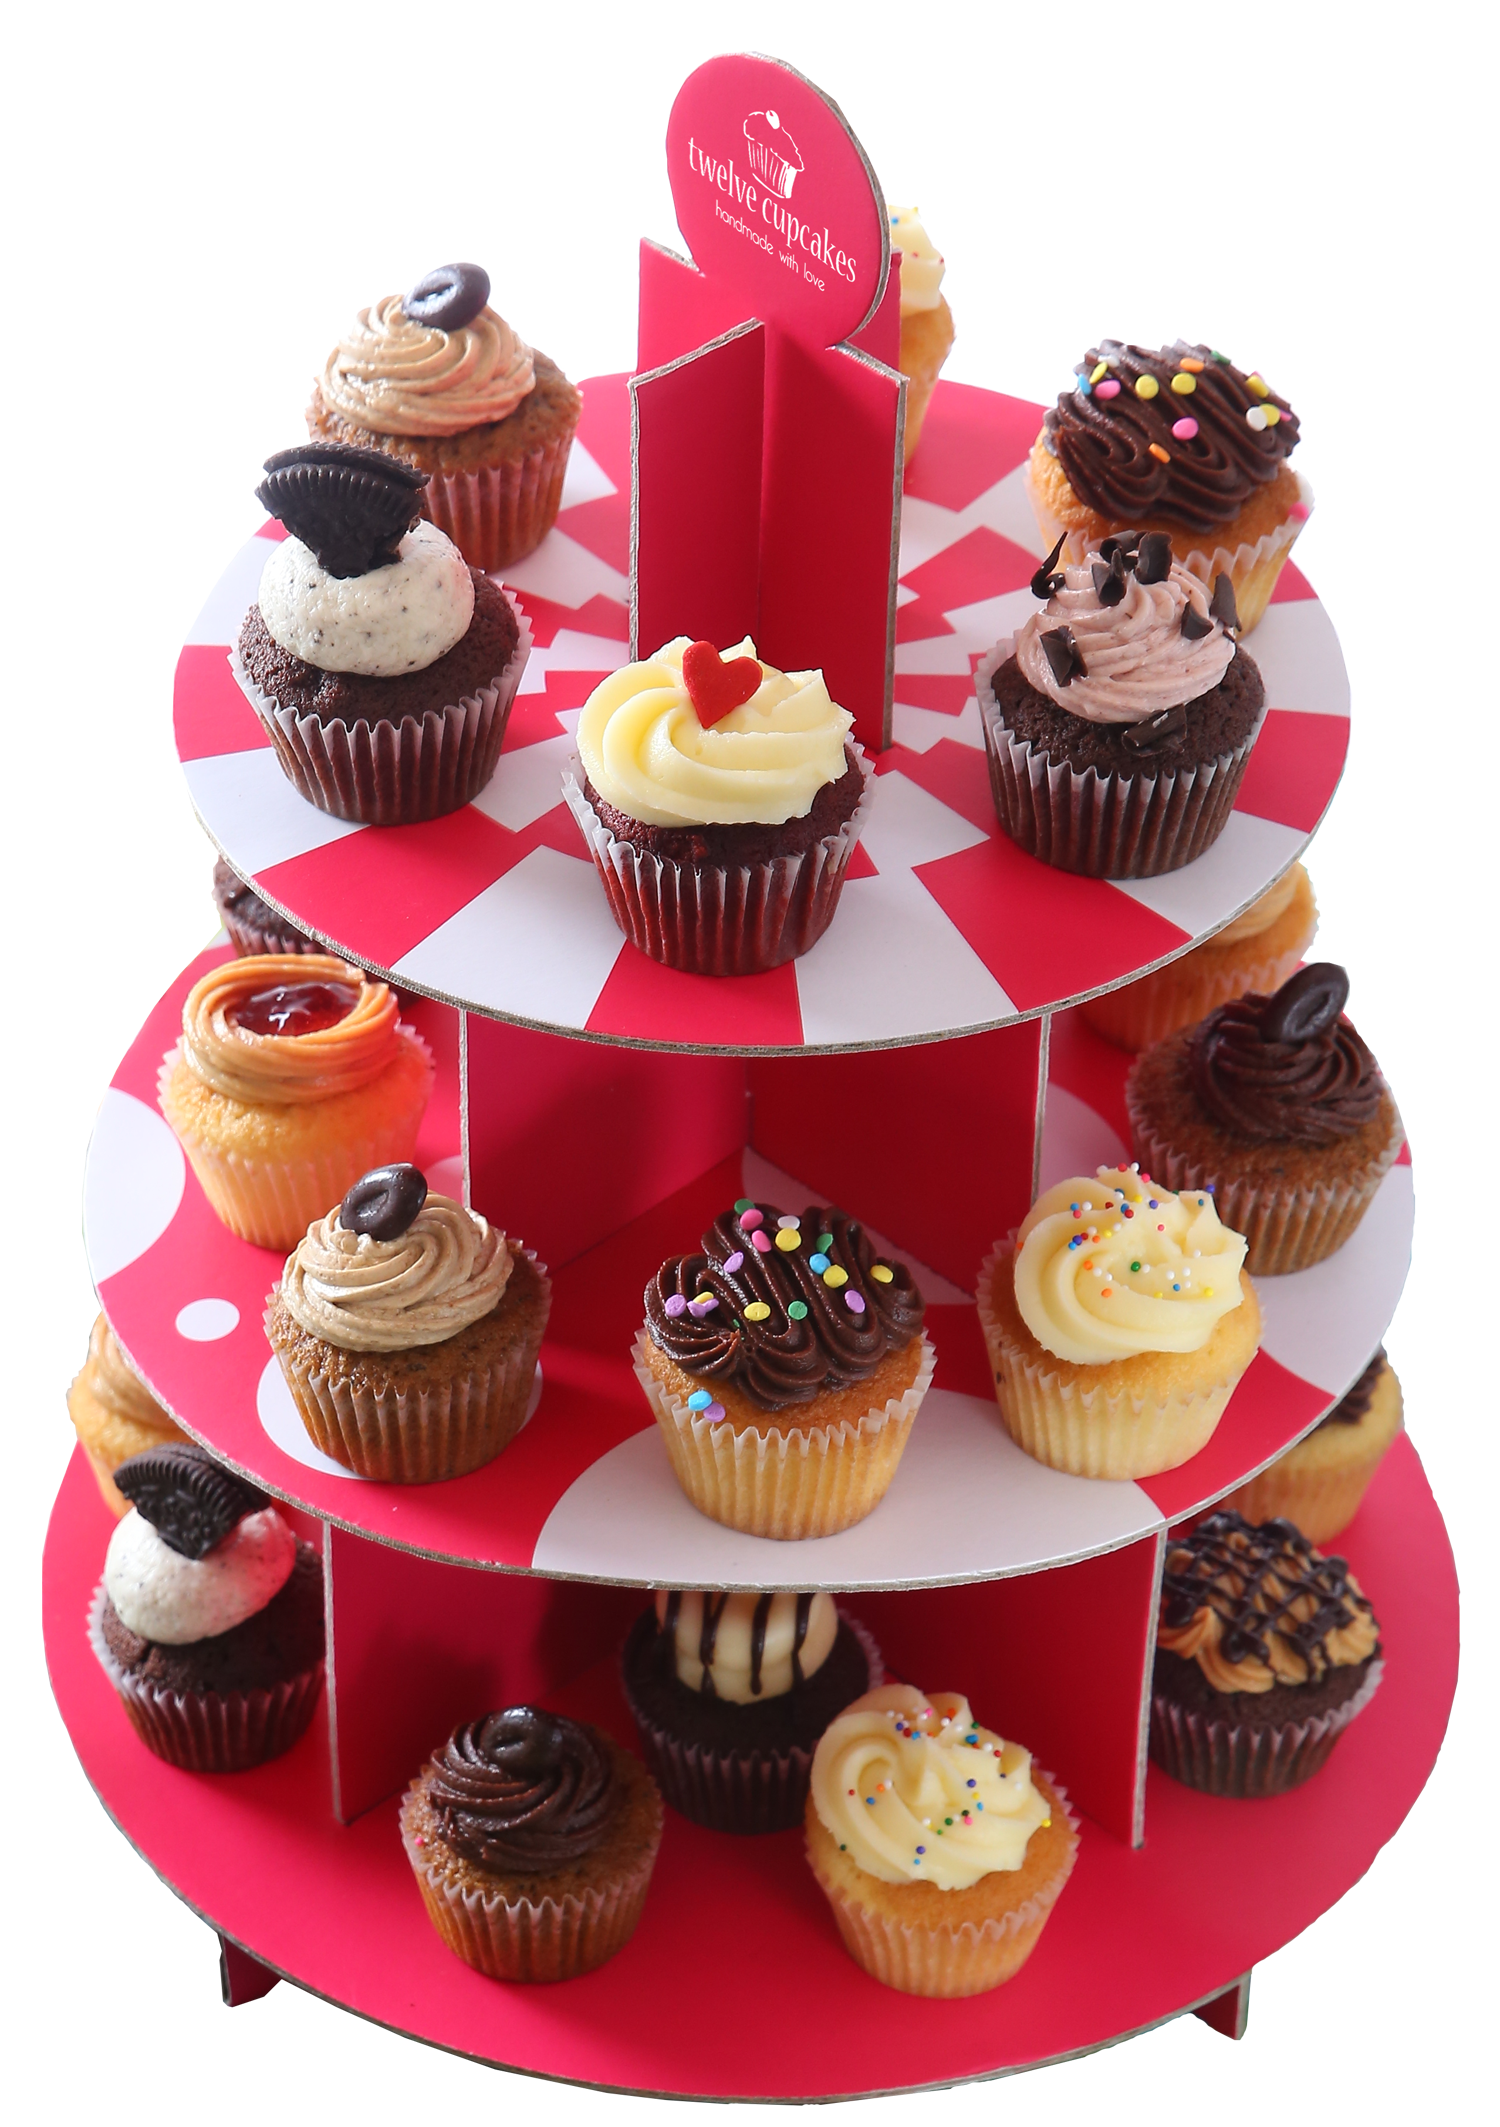 Bettwäsche Cupcake Welcome To Twelve Cupcakes Taiwan Candy Bar Candy Cupcakes